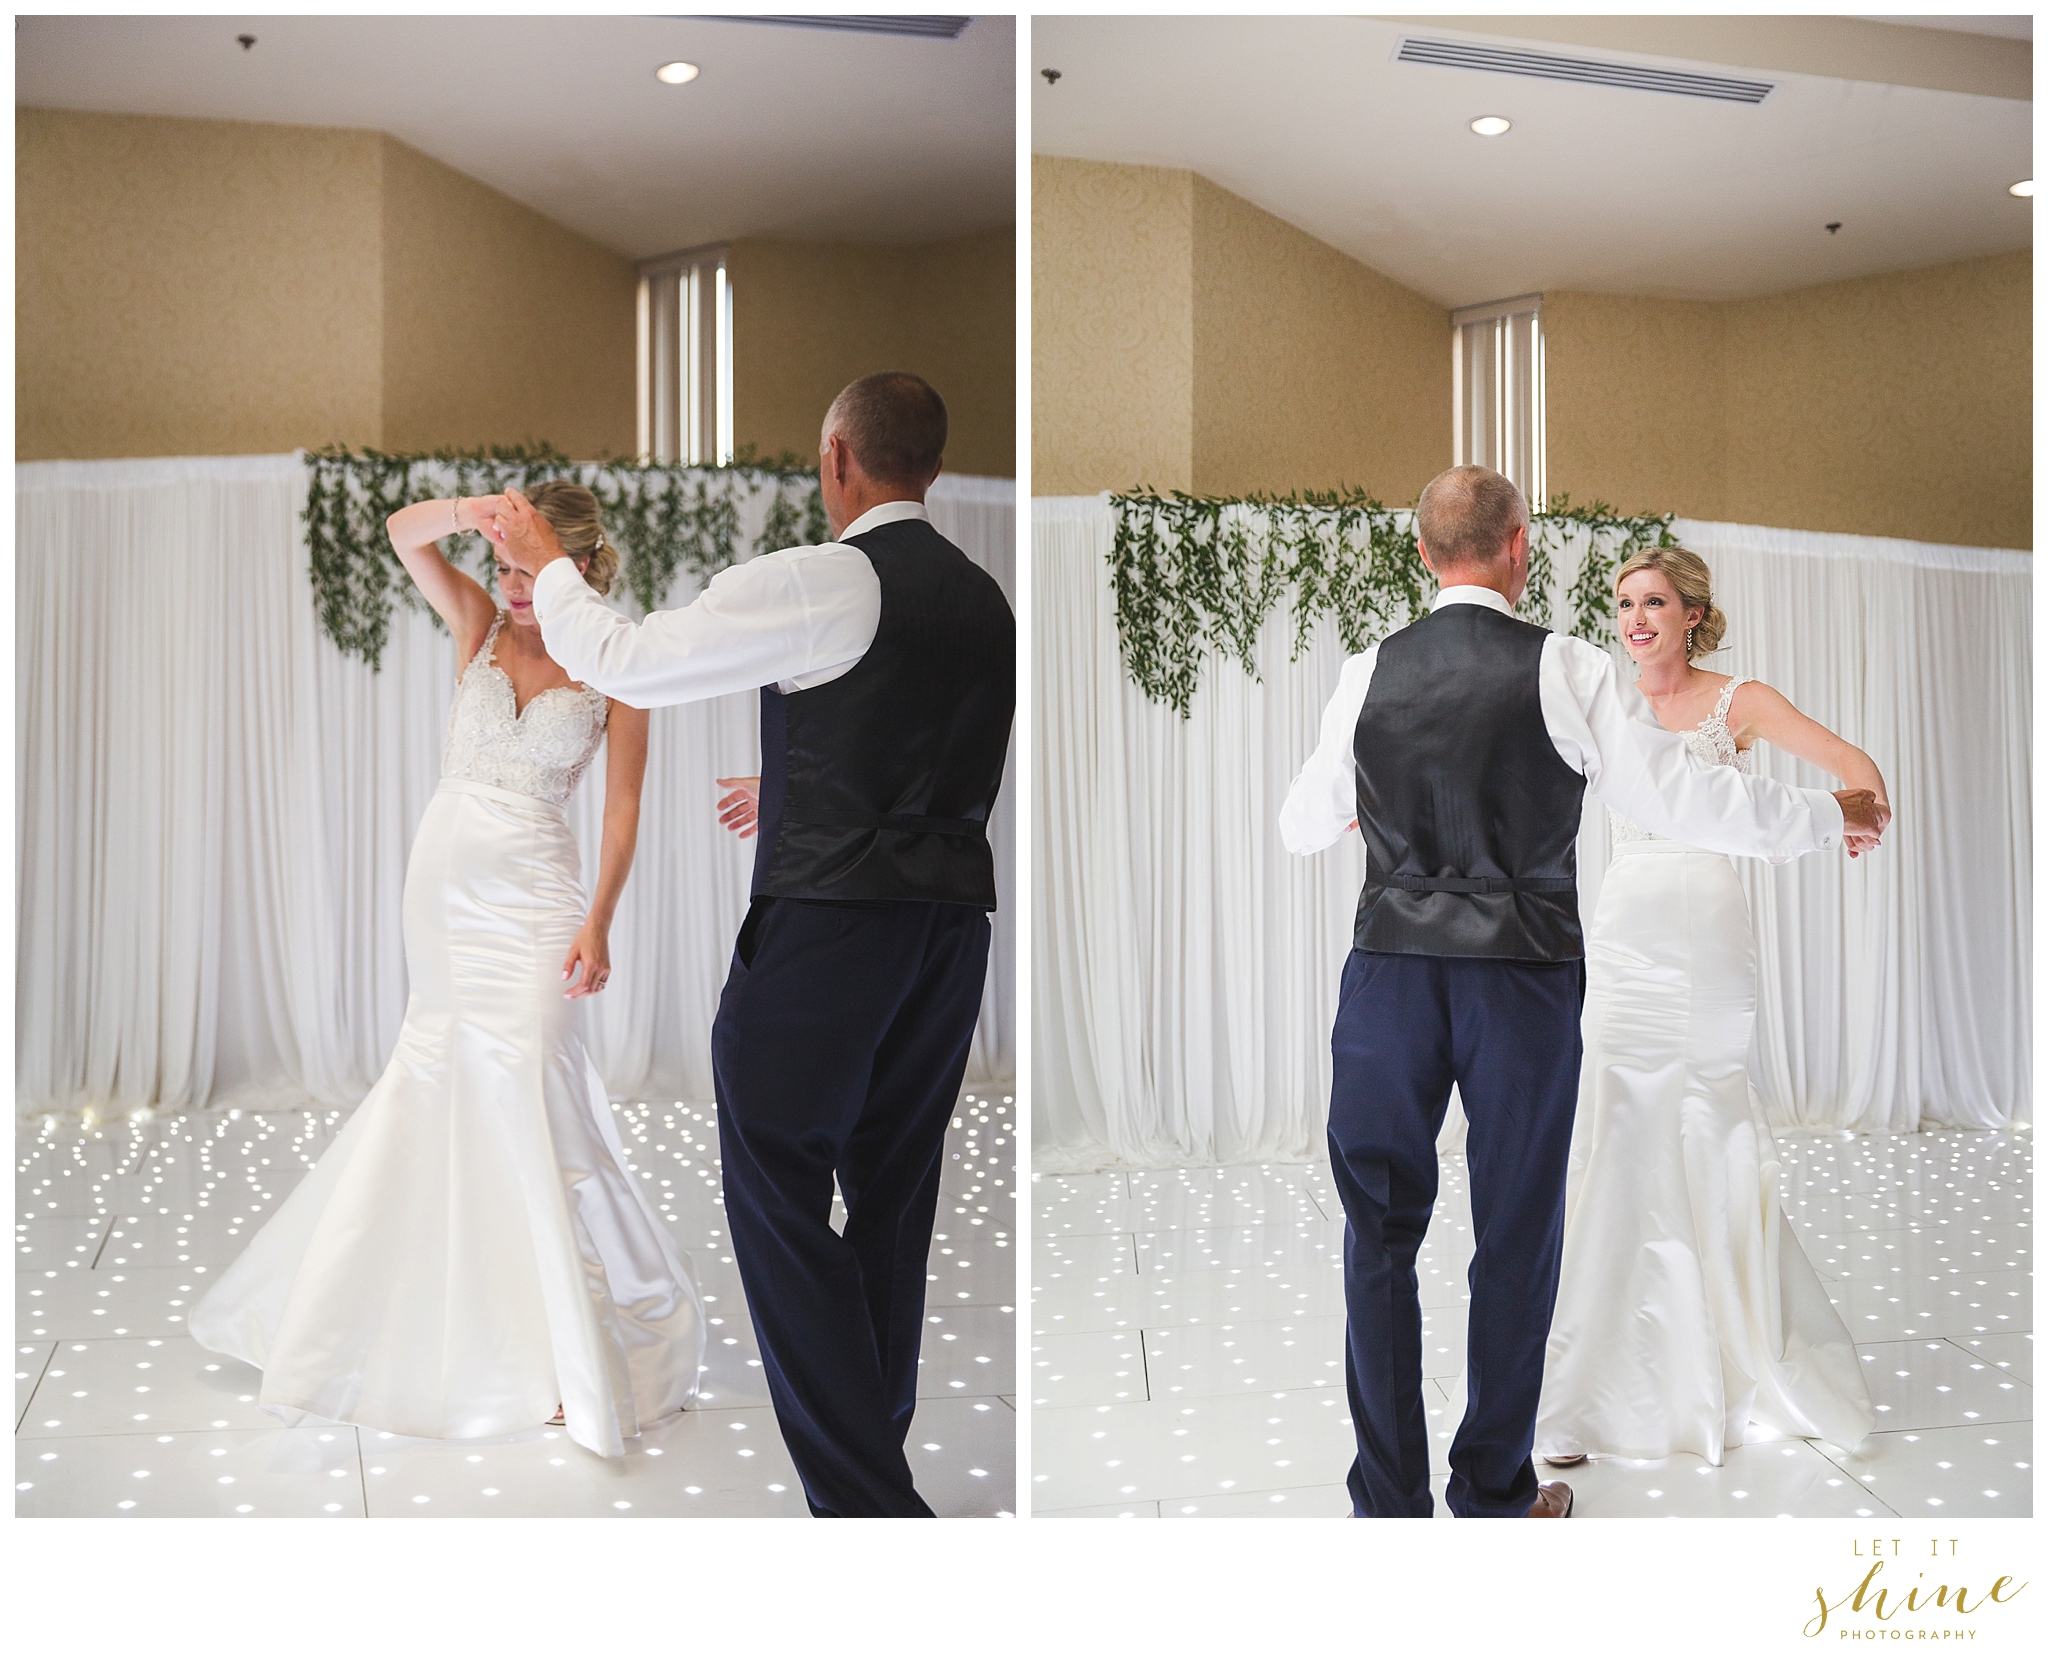 The Grove Hotel Boise Wedding 2017 Let it Shine Photography-1173.jpg